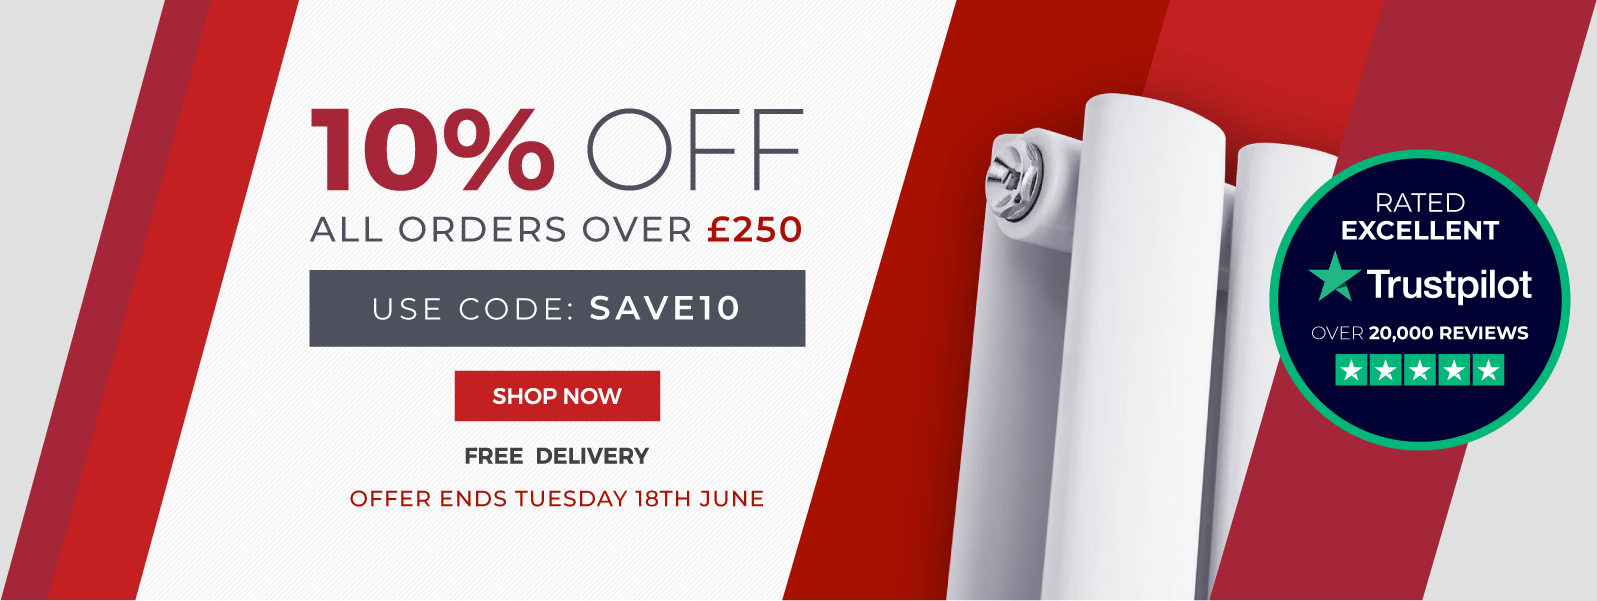 10% Off All Orders Over £250 Use Code: SAVE10  Shop Now  Free Delivery  Offer Ends Tuesday 18th June